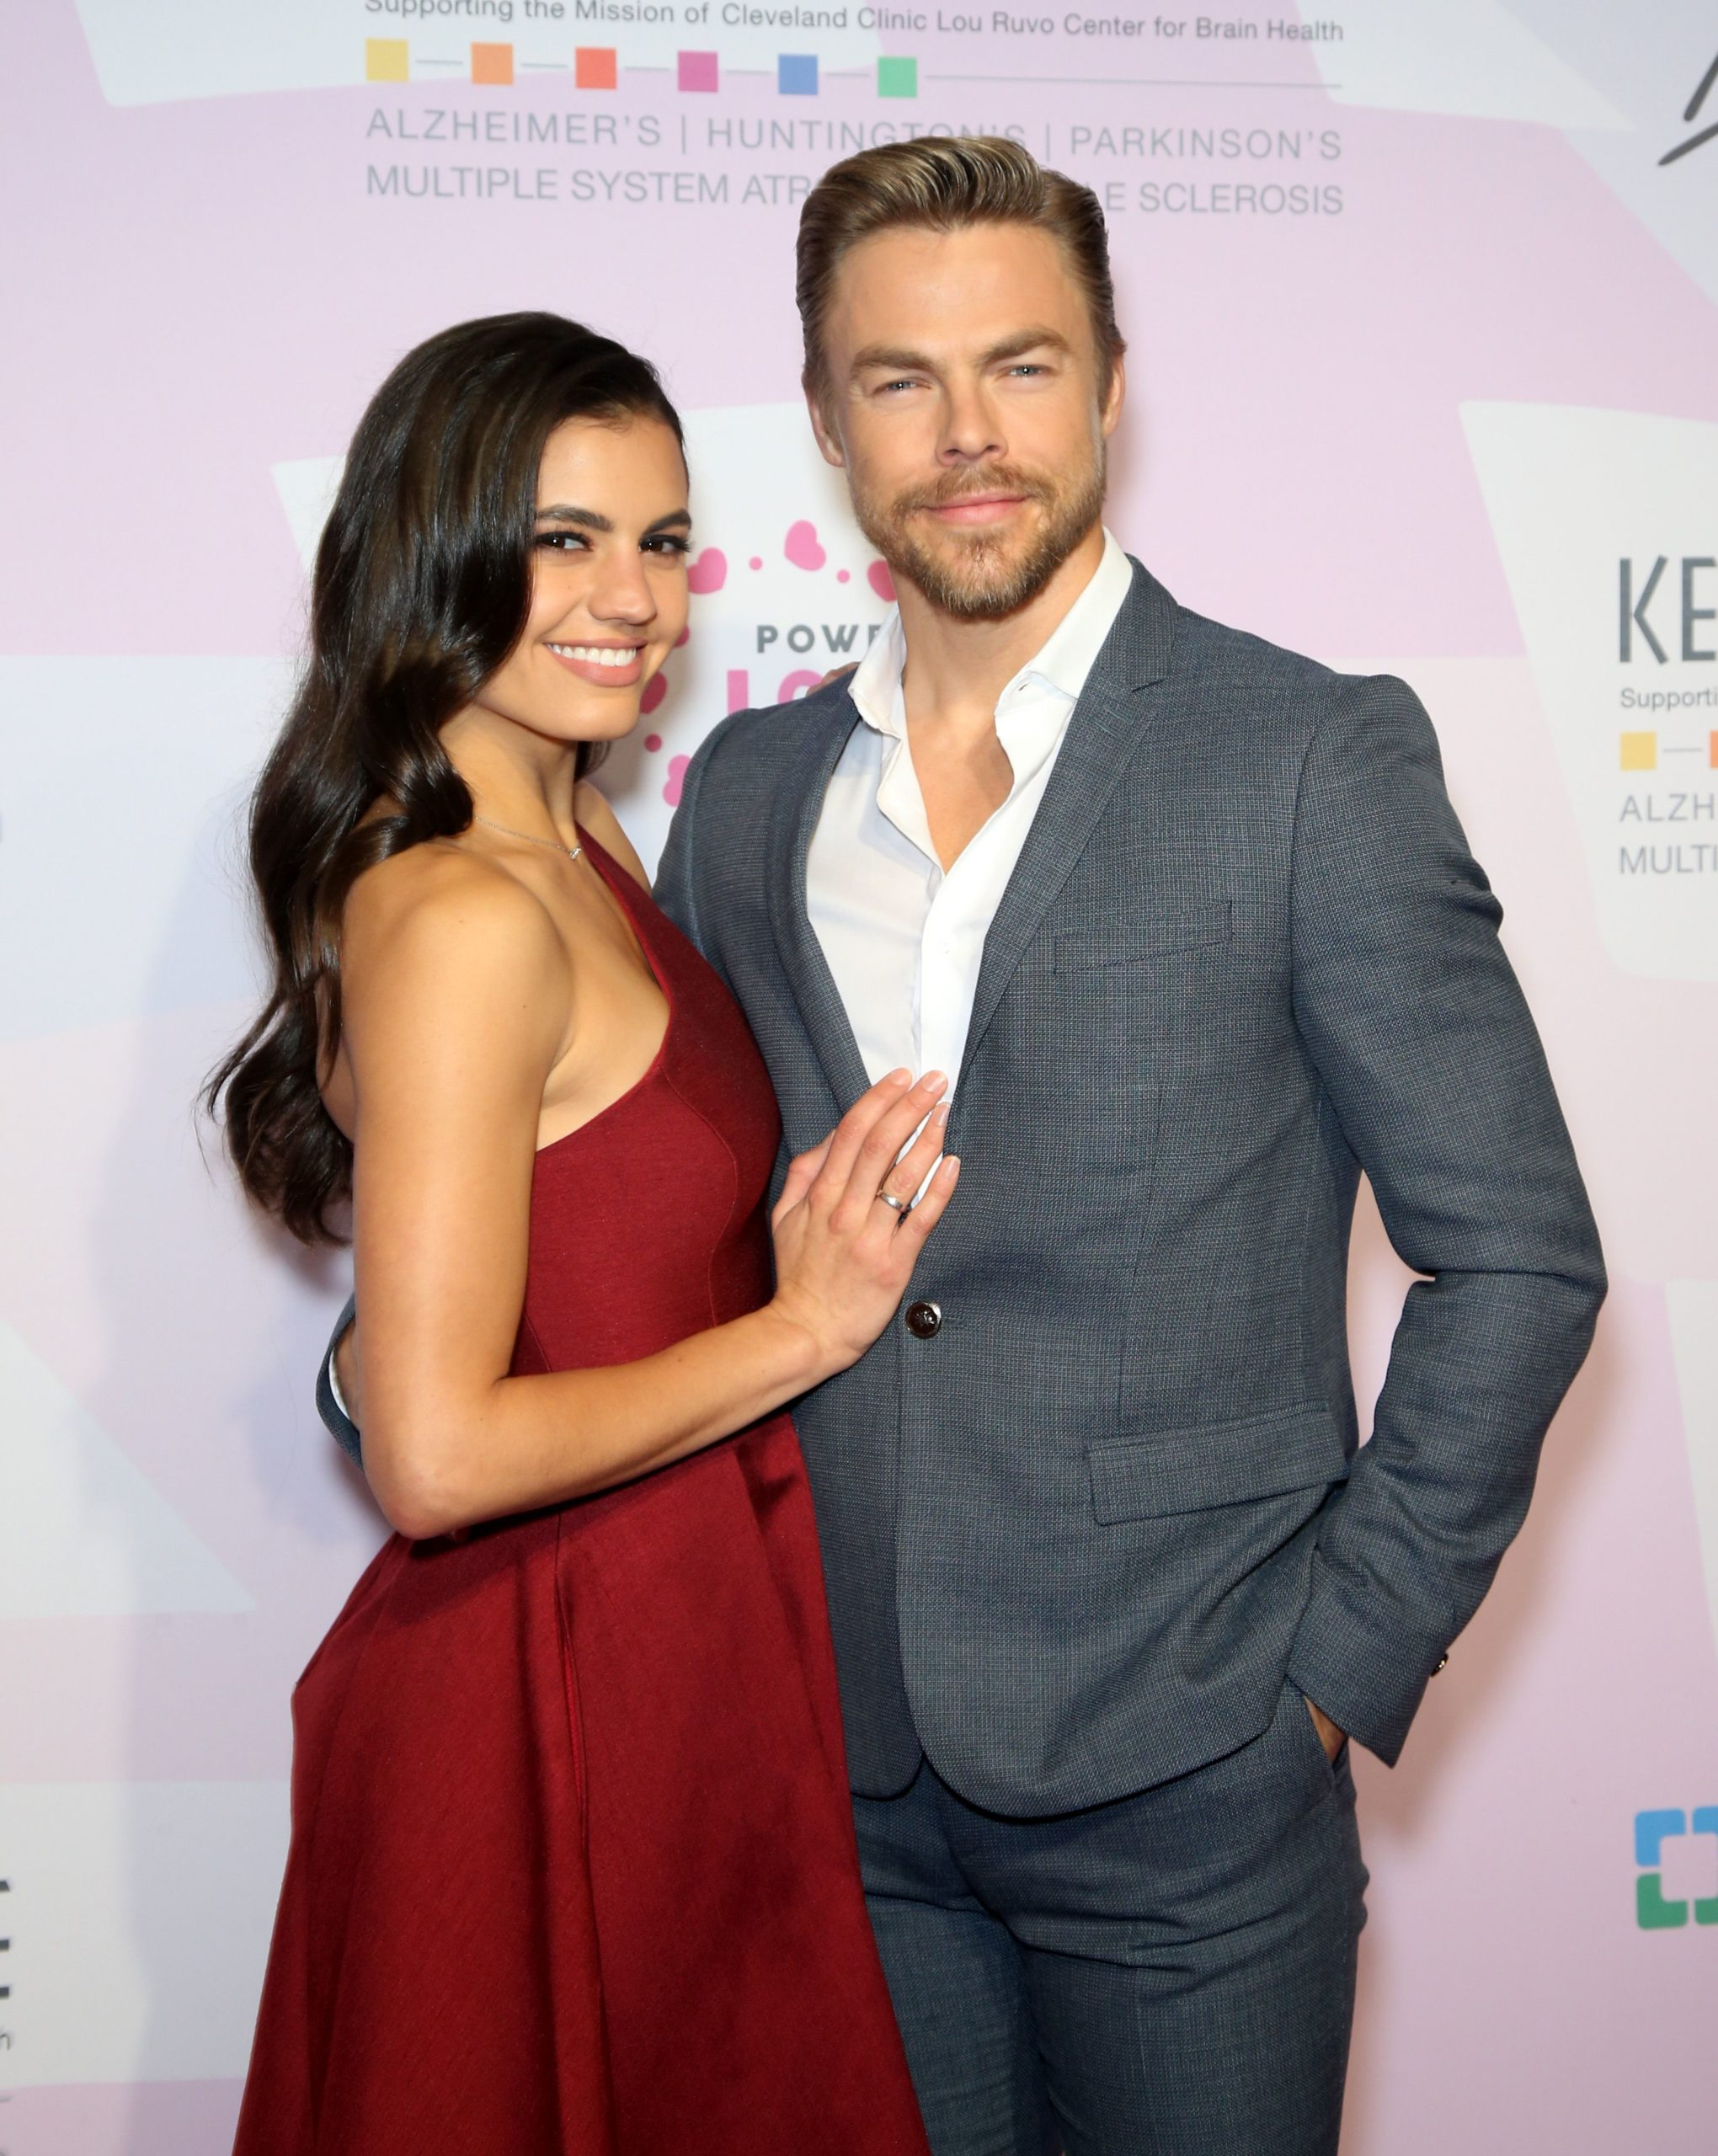 Dancing with The Stars Derek Hough Season 30 Star Confesses About His Early Days with DWTS!